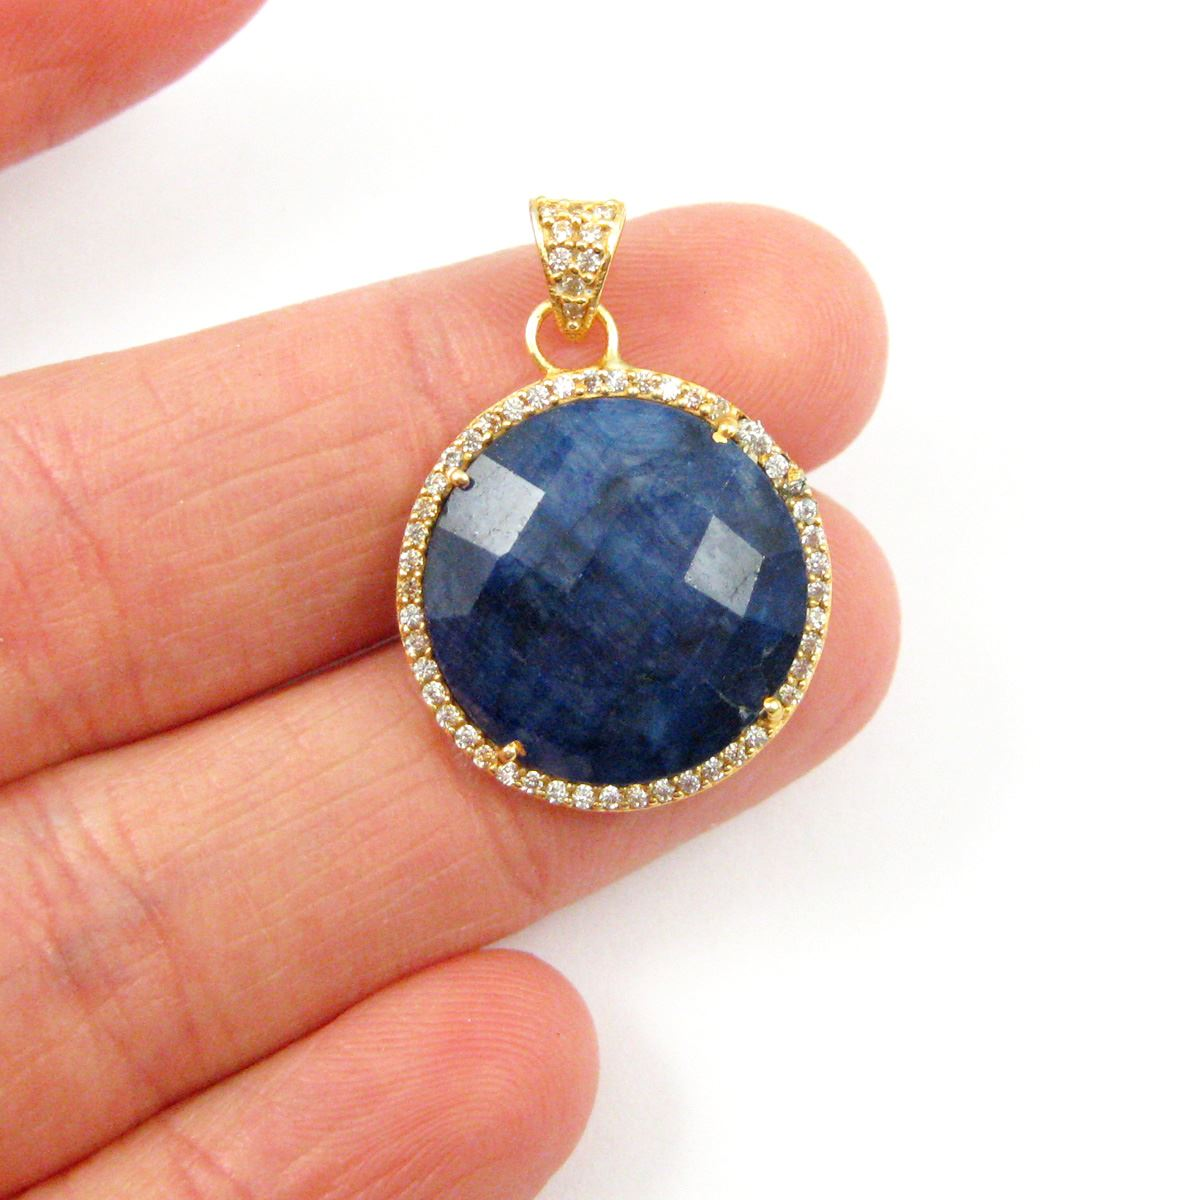 22k Gold plated Sterling Silver Pave Bezel Gemstone Pendant - Cubic Zirconia Pave Setting -  Round Faceted Stone-Blue Sapphire Dyed - 21mm